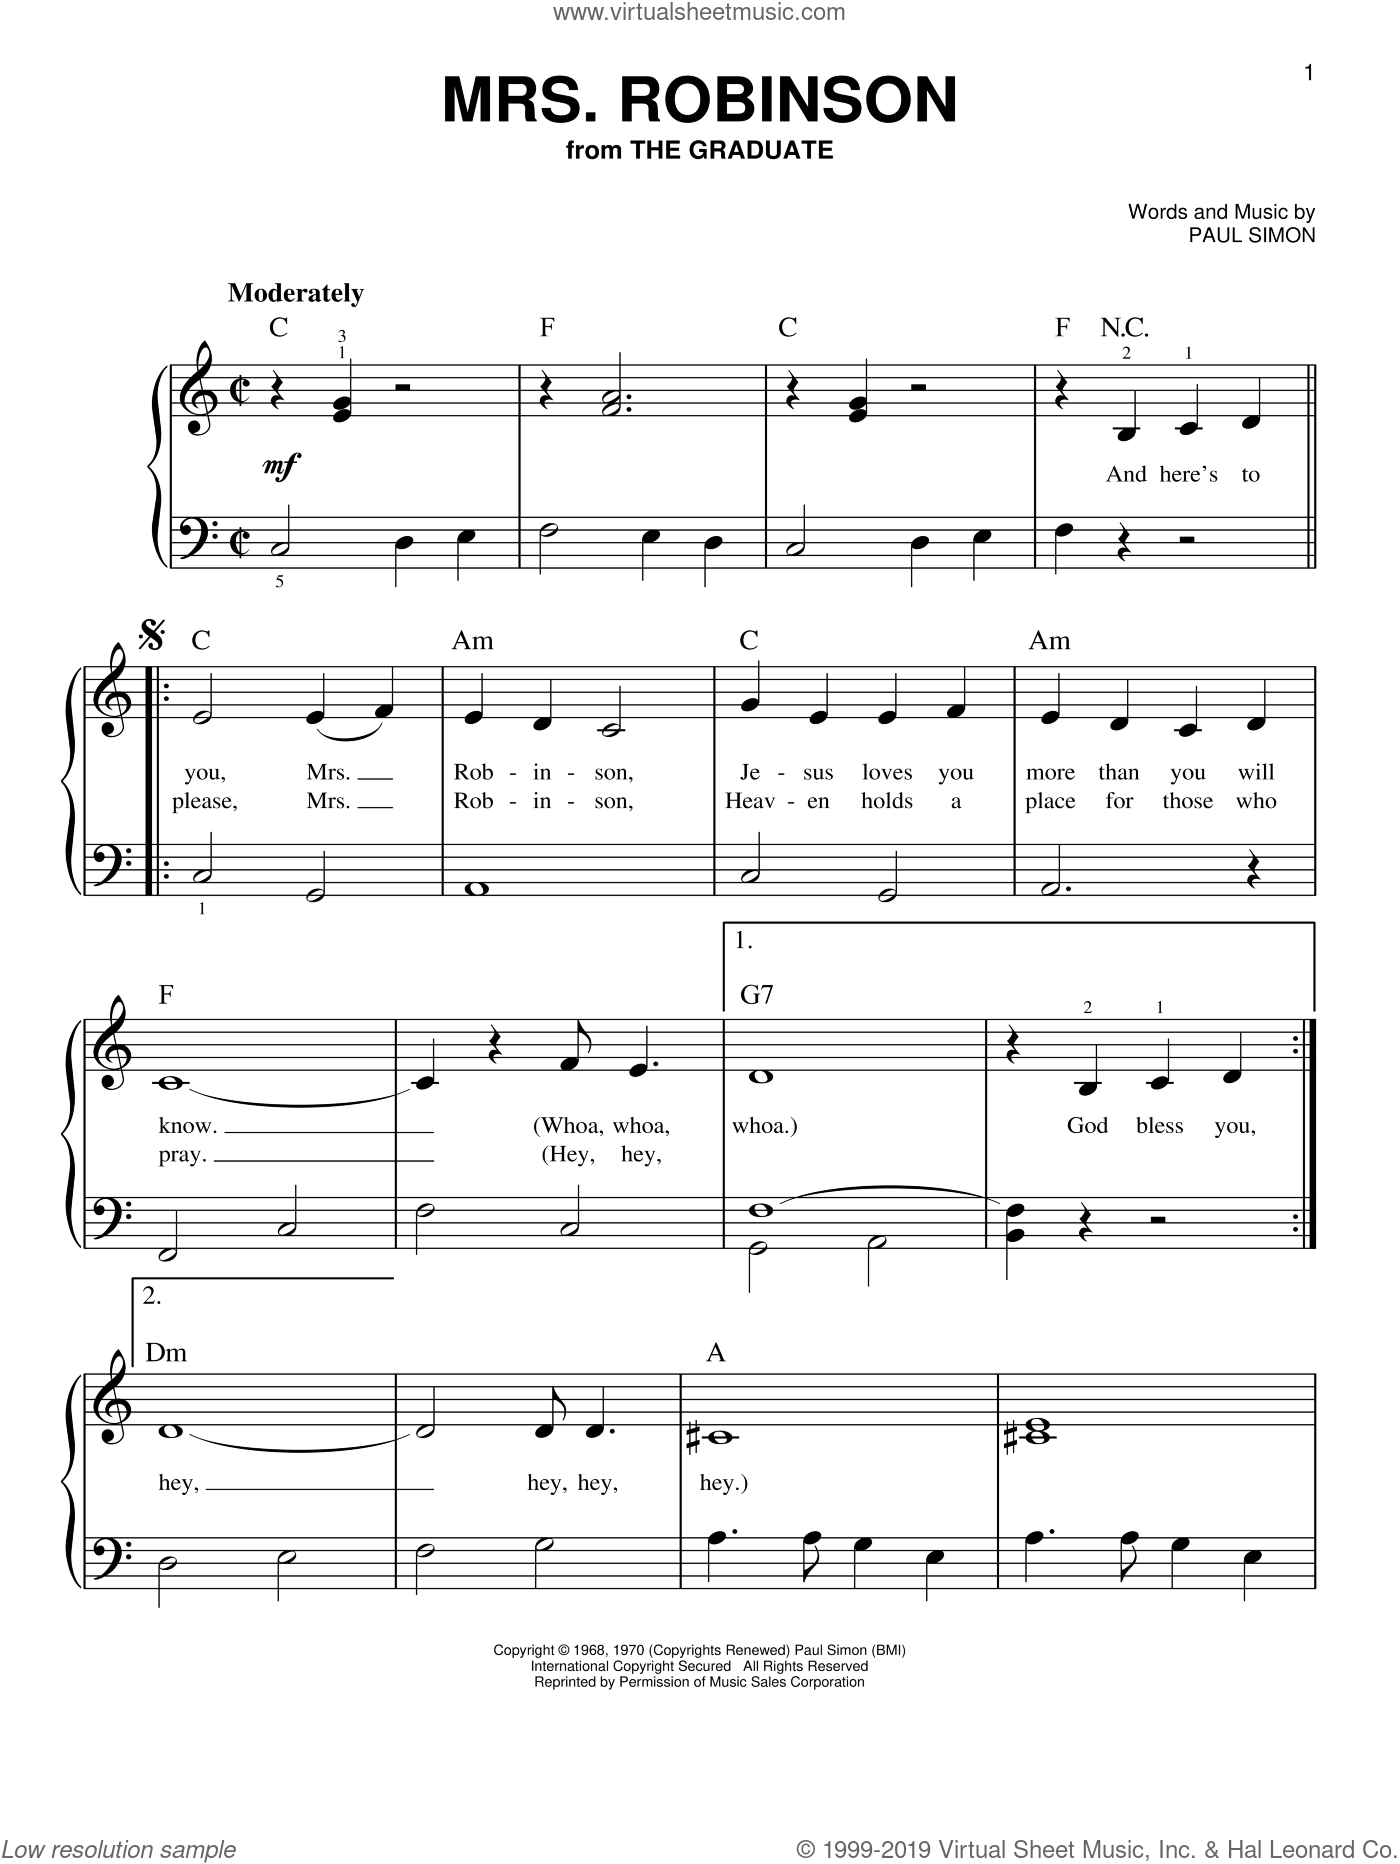 Mrs. Robinson sheet music for piano solo by Paul Simon